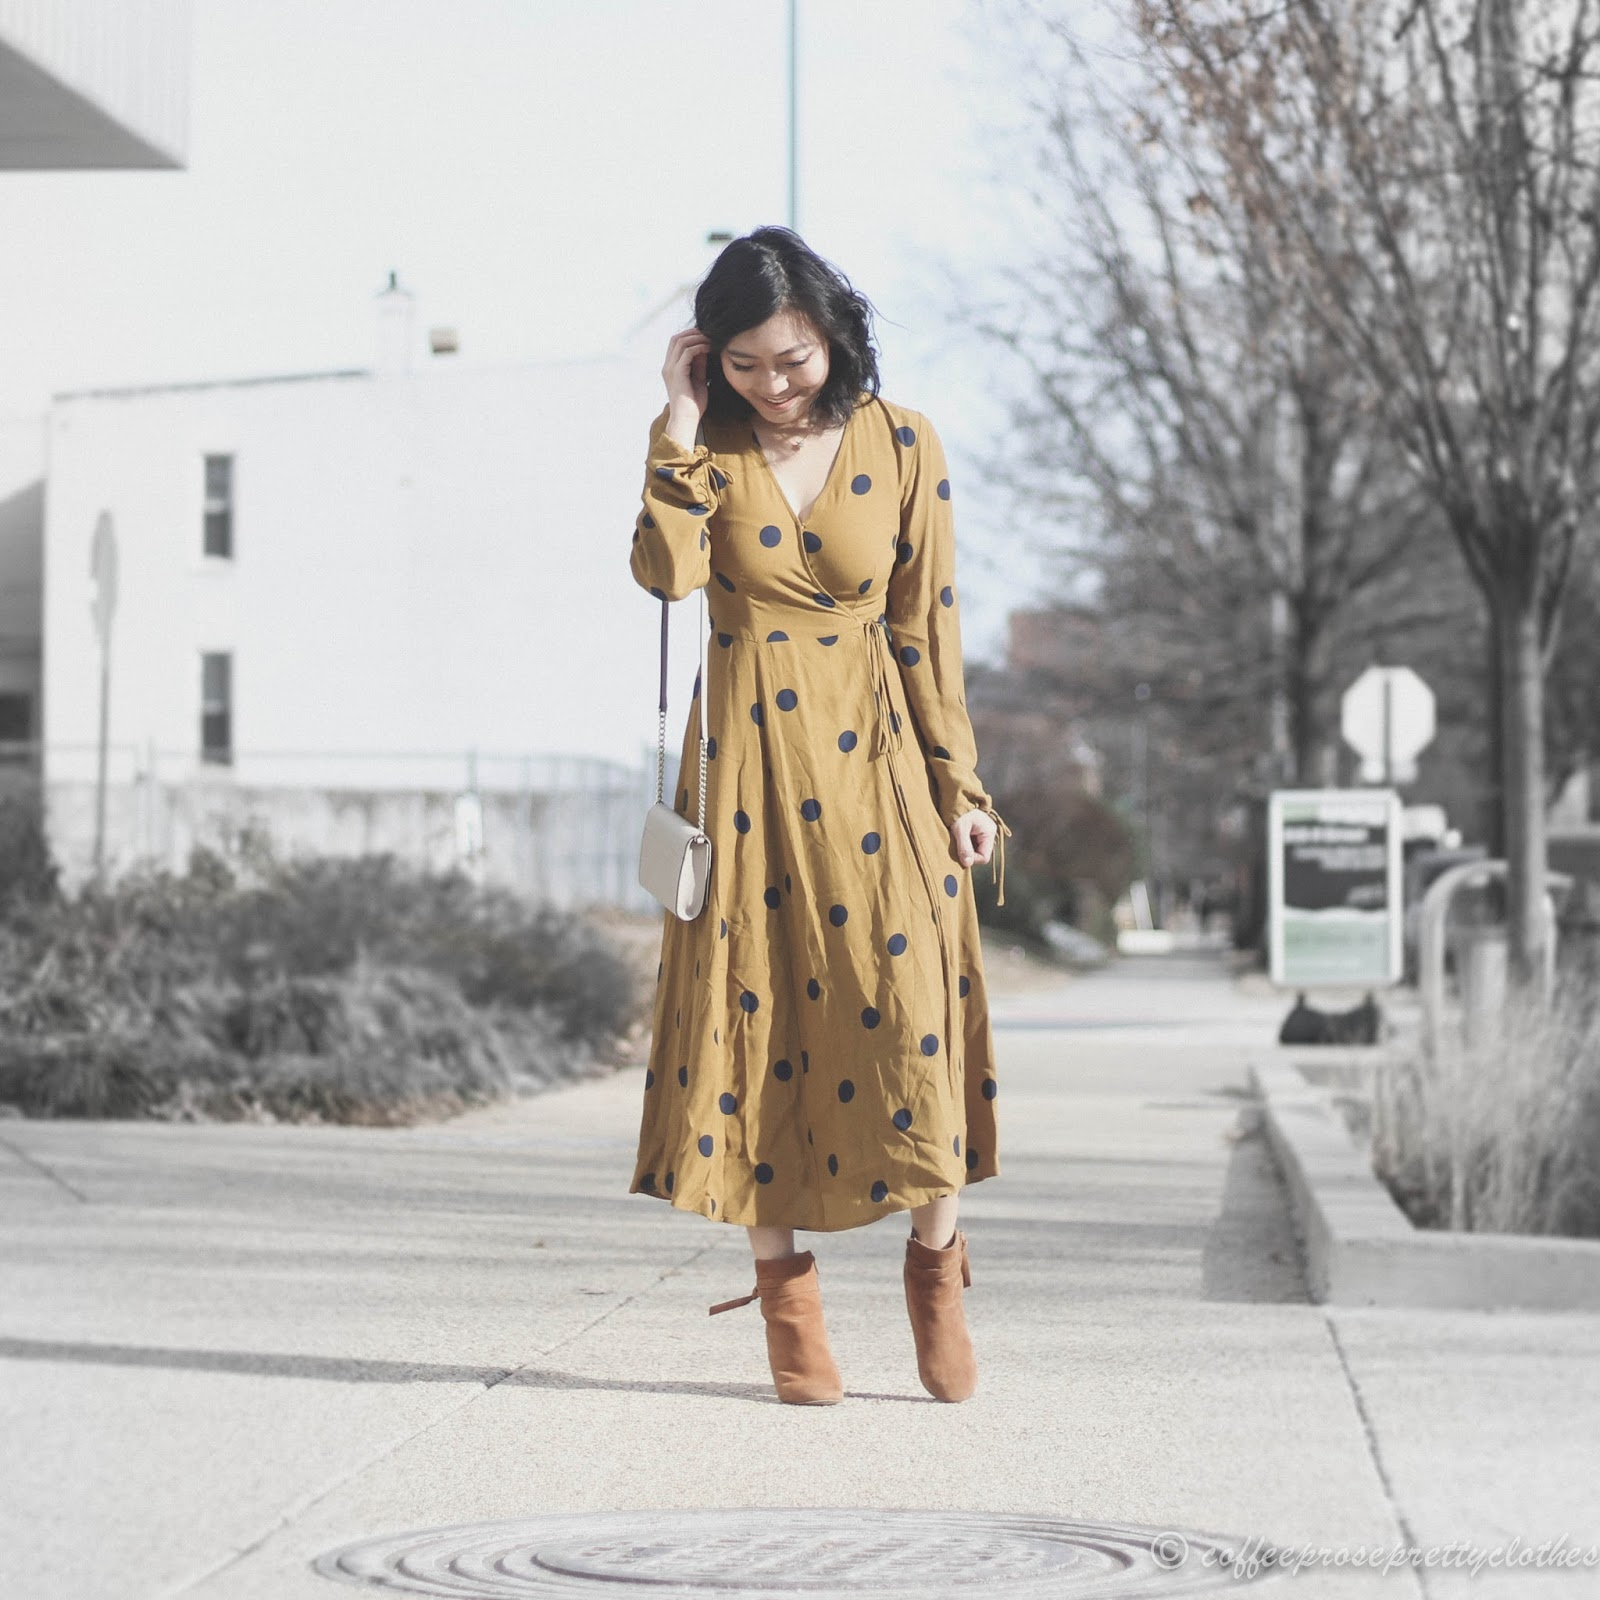 Urban Outfitters Audrey Wrap Midi Dress, Sole Society Flynn, Kate Spade crossbody